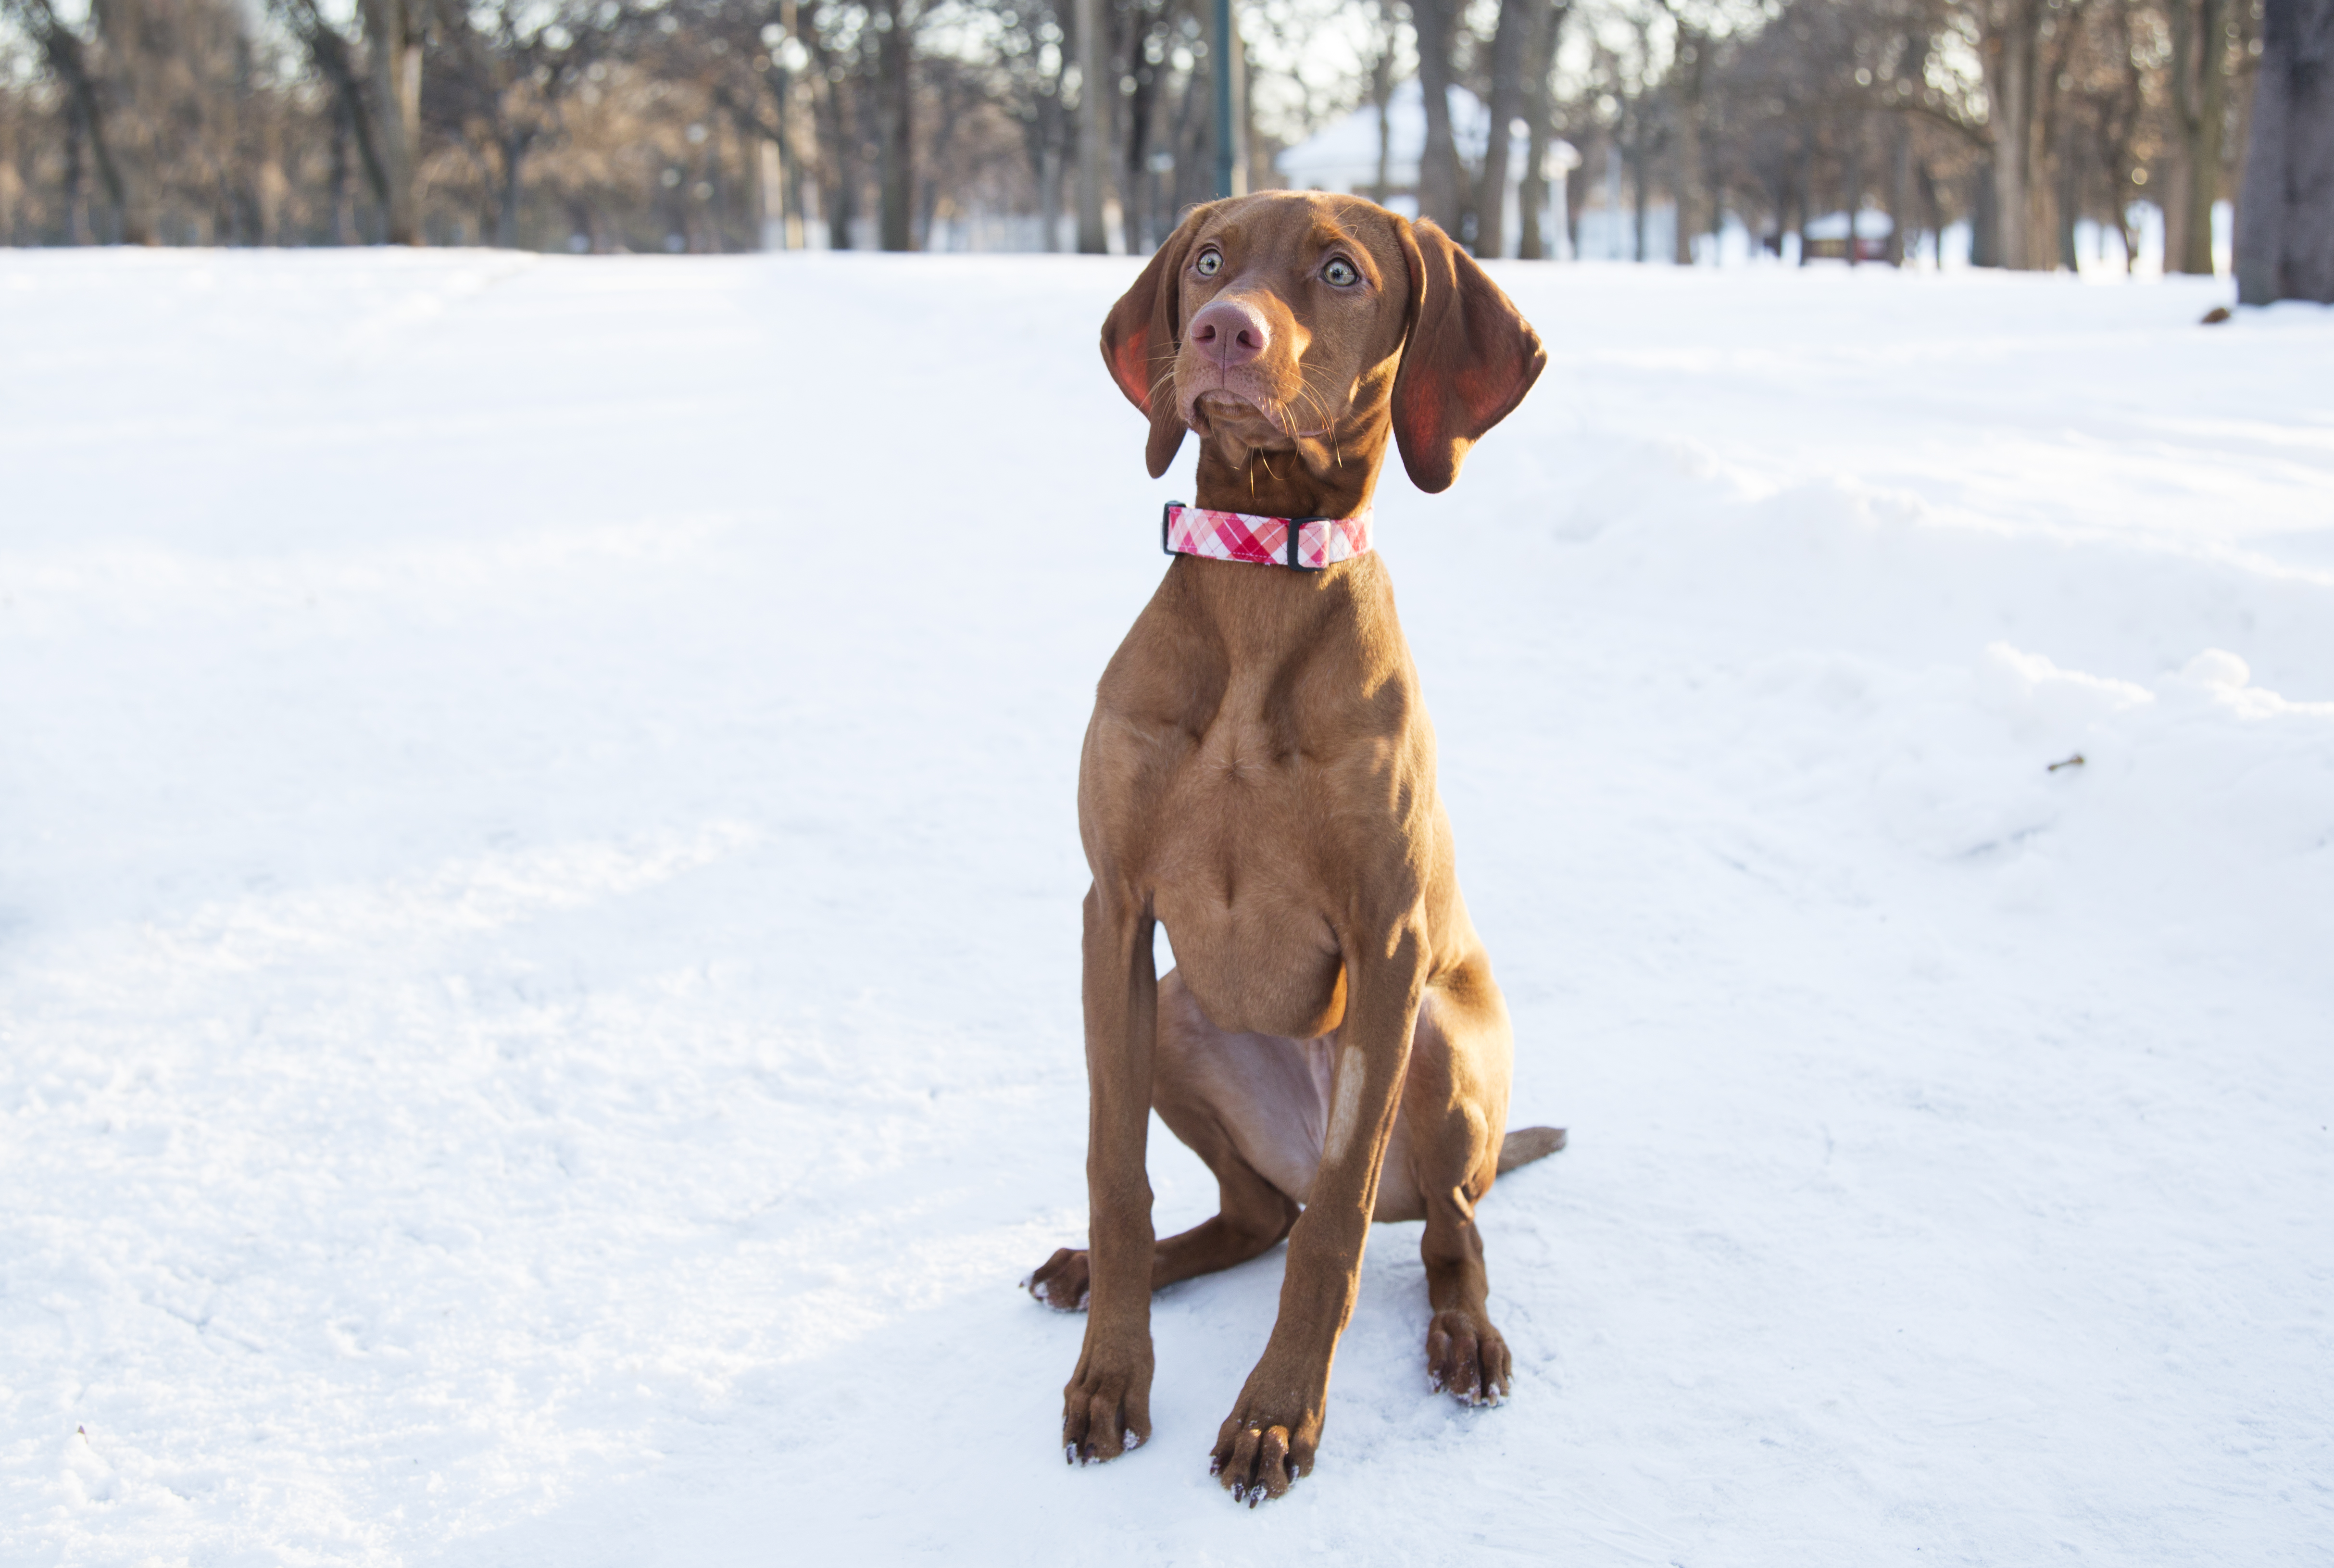 The Top 5 Training Tips From dogIDs